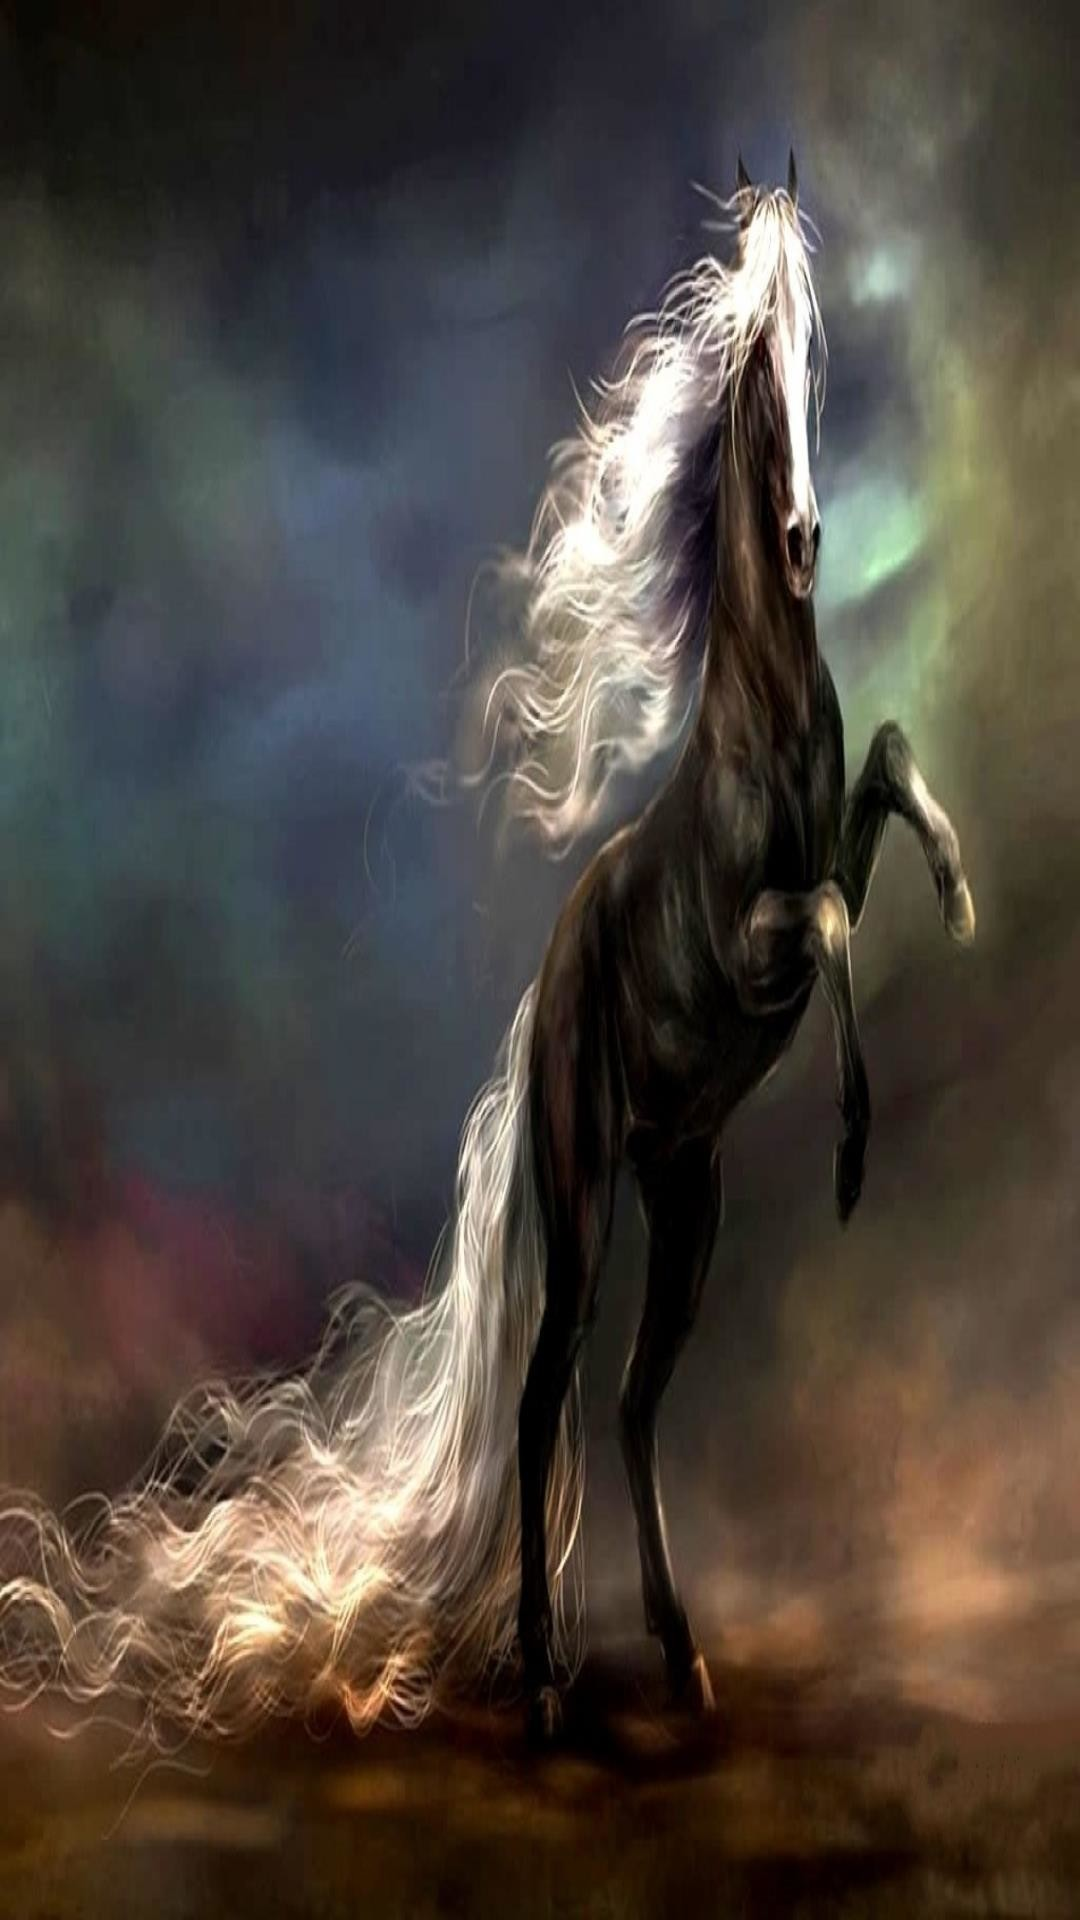 Data Src Popular Dark Horse Wallpaper For Iphone 5 Black Horse White Mane Art 1080x1920 Download Hd Wallpaper Wallpapertip